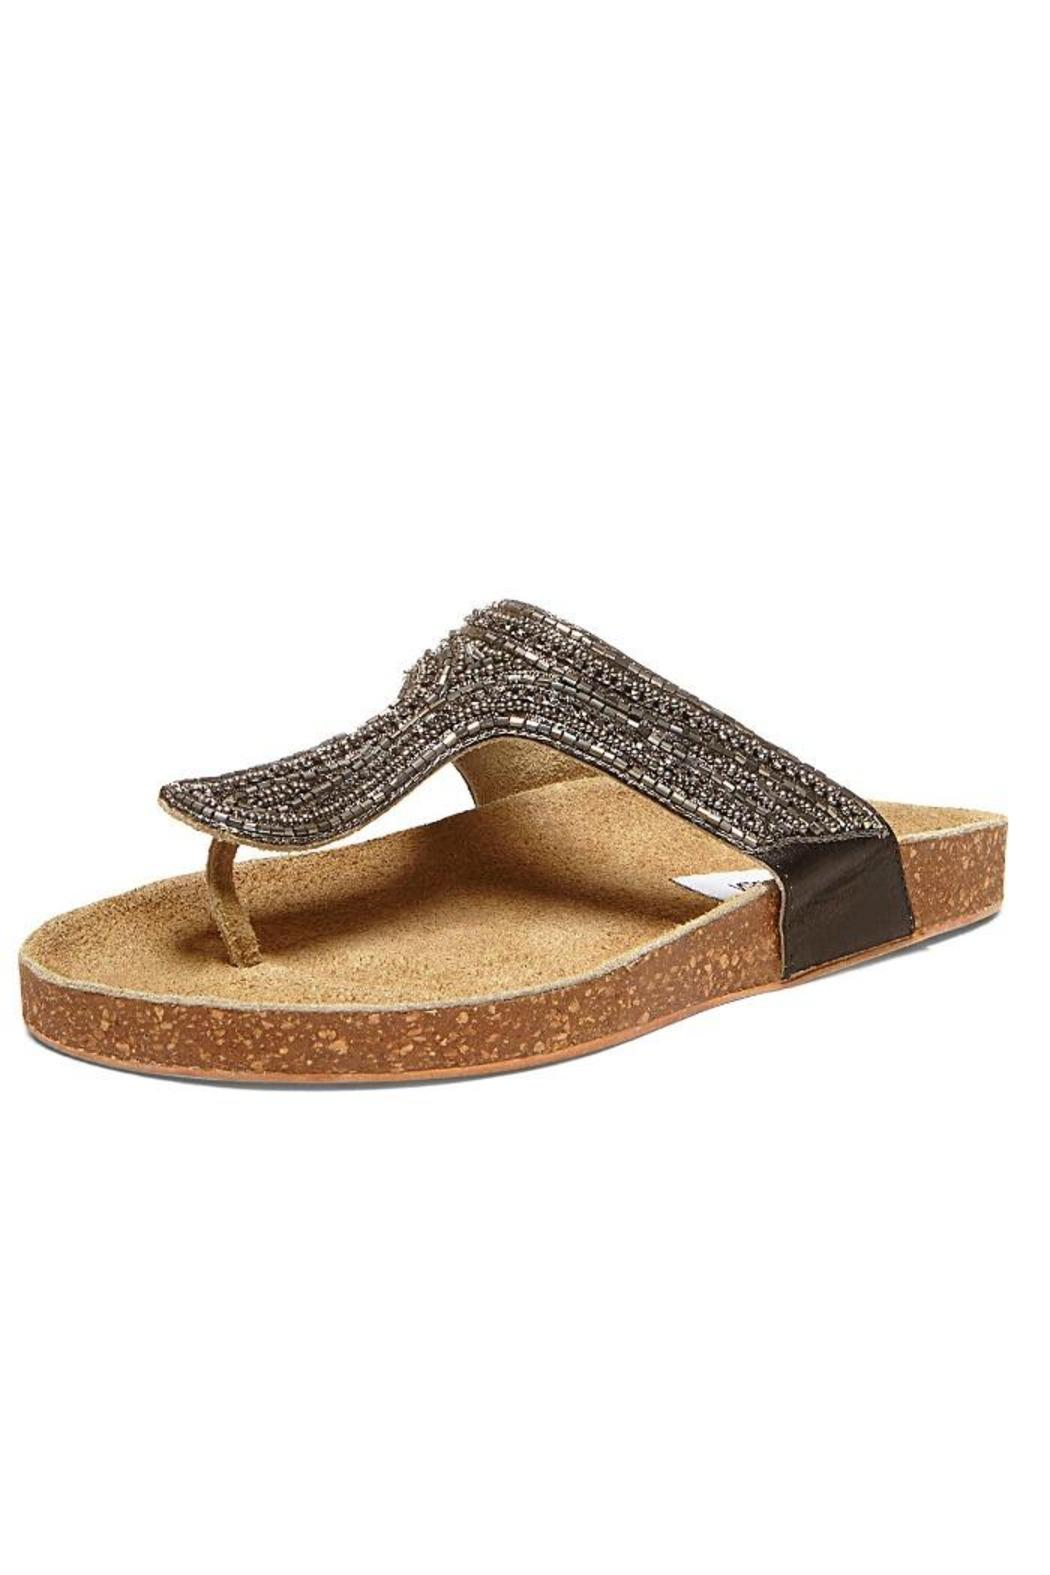 9955b7990d8 Steve Madden Pewter Radlee Sandal from New Jersey by The House ...